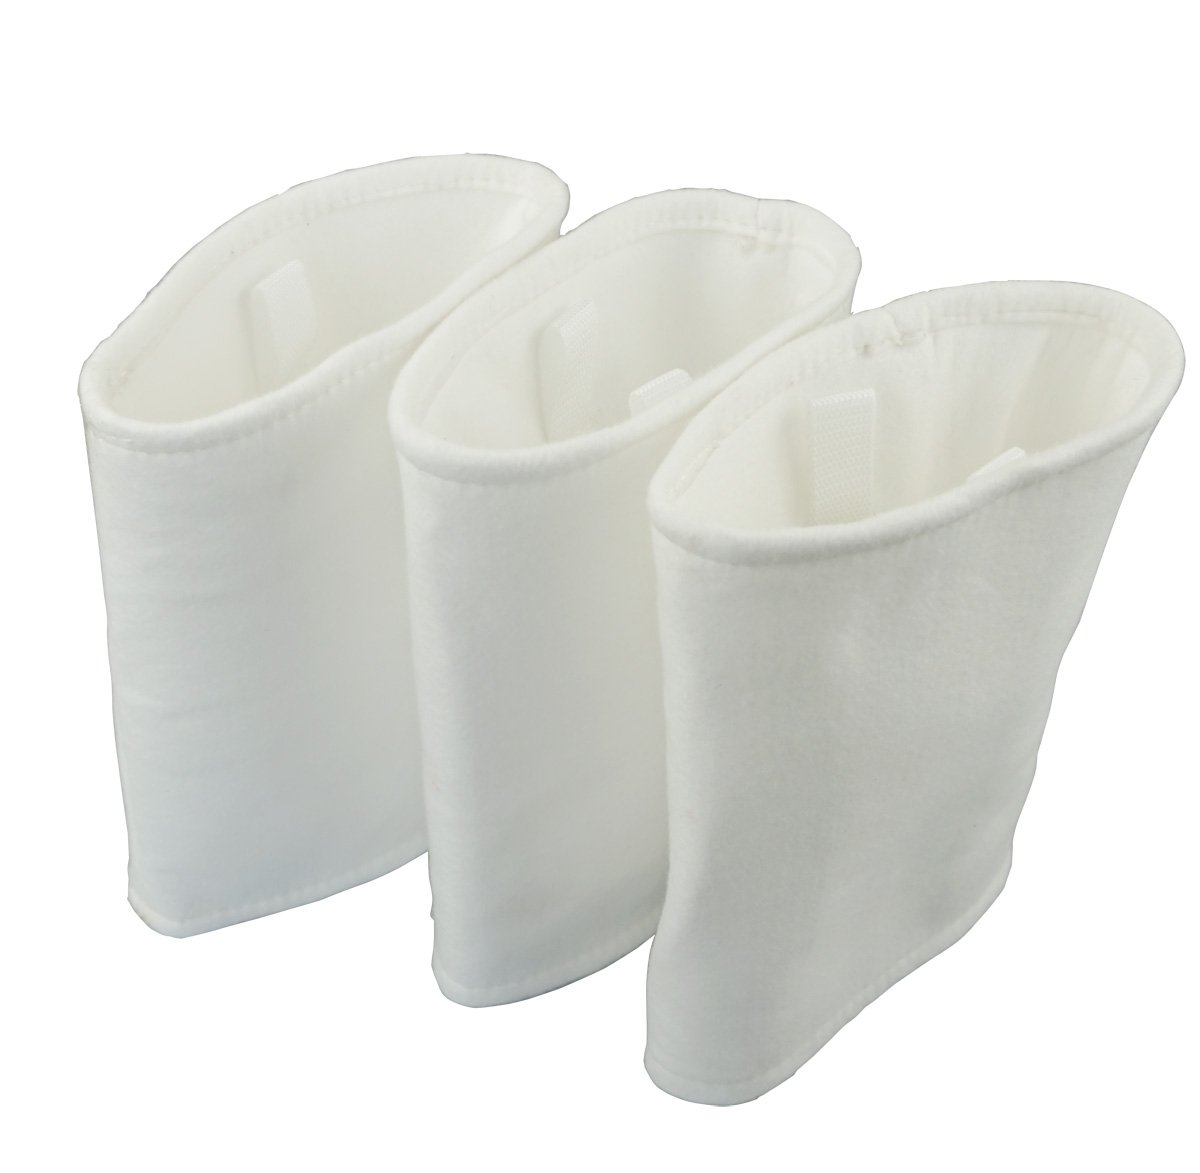 Pool Spa Part All purpose spa filter bag PACK-OF-3 for LA spas filtration hot tub filter bag